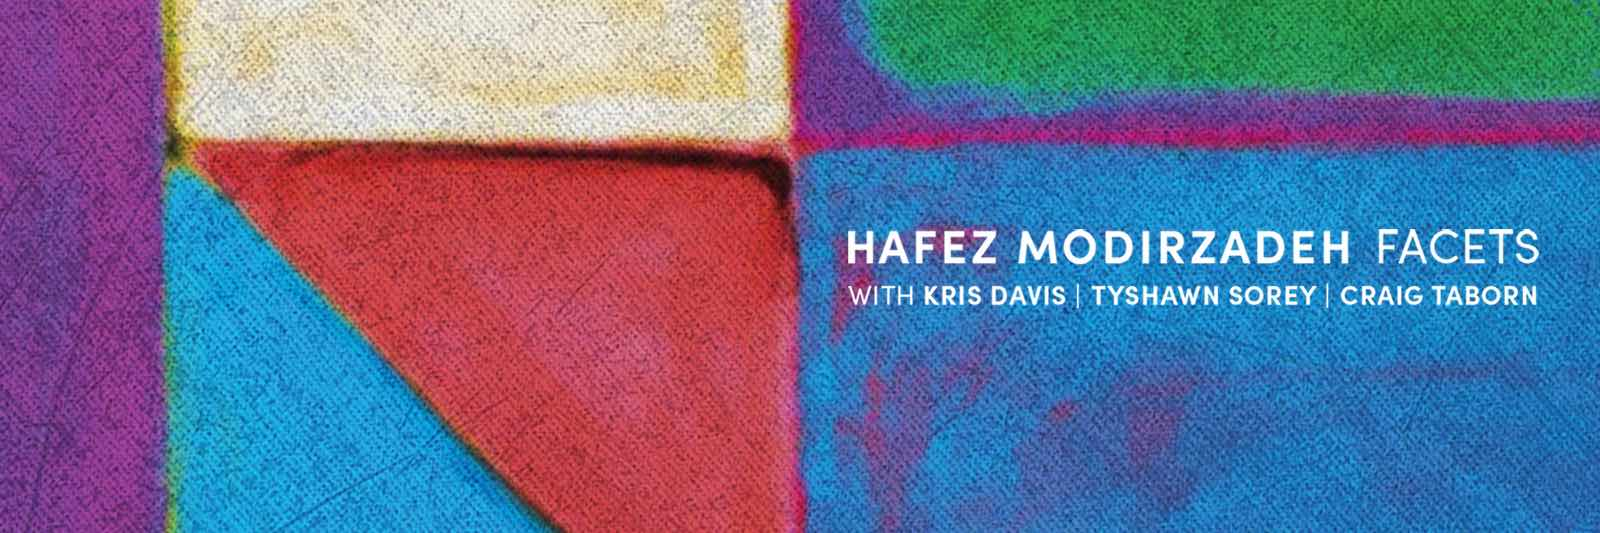 Hafex Modirzadeh with Kris Davis, Tyshawn Sorry, Craig Taborn - Facets